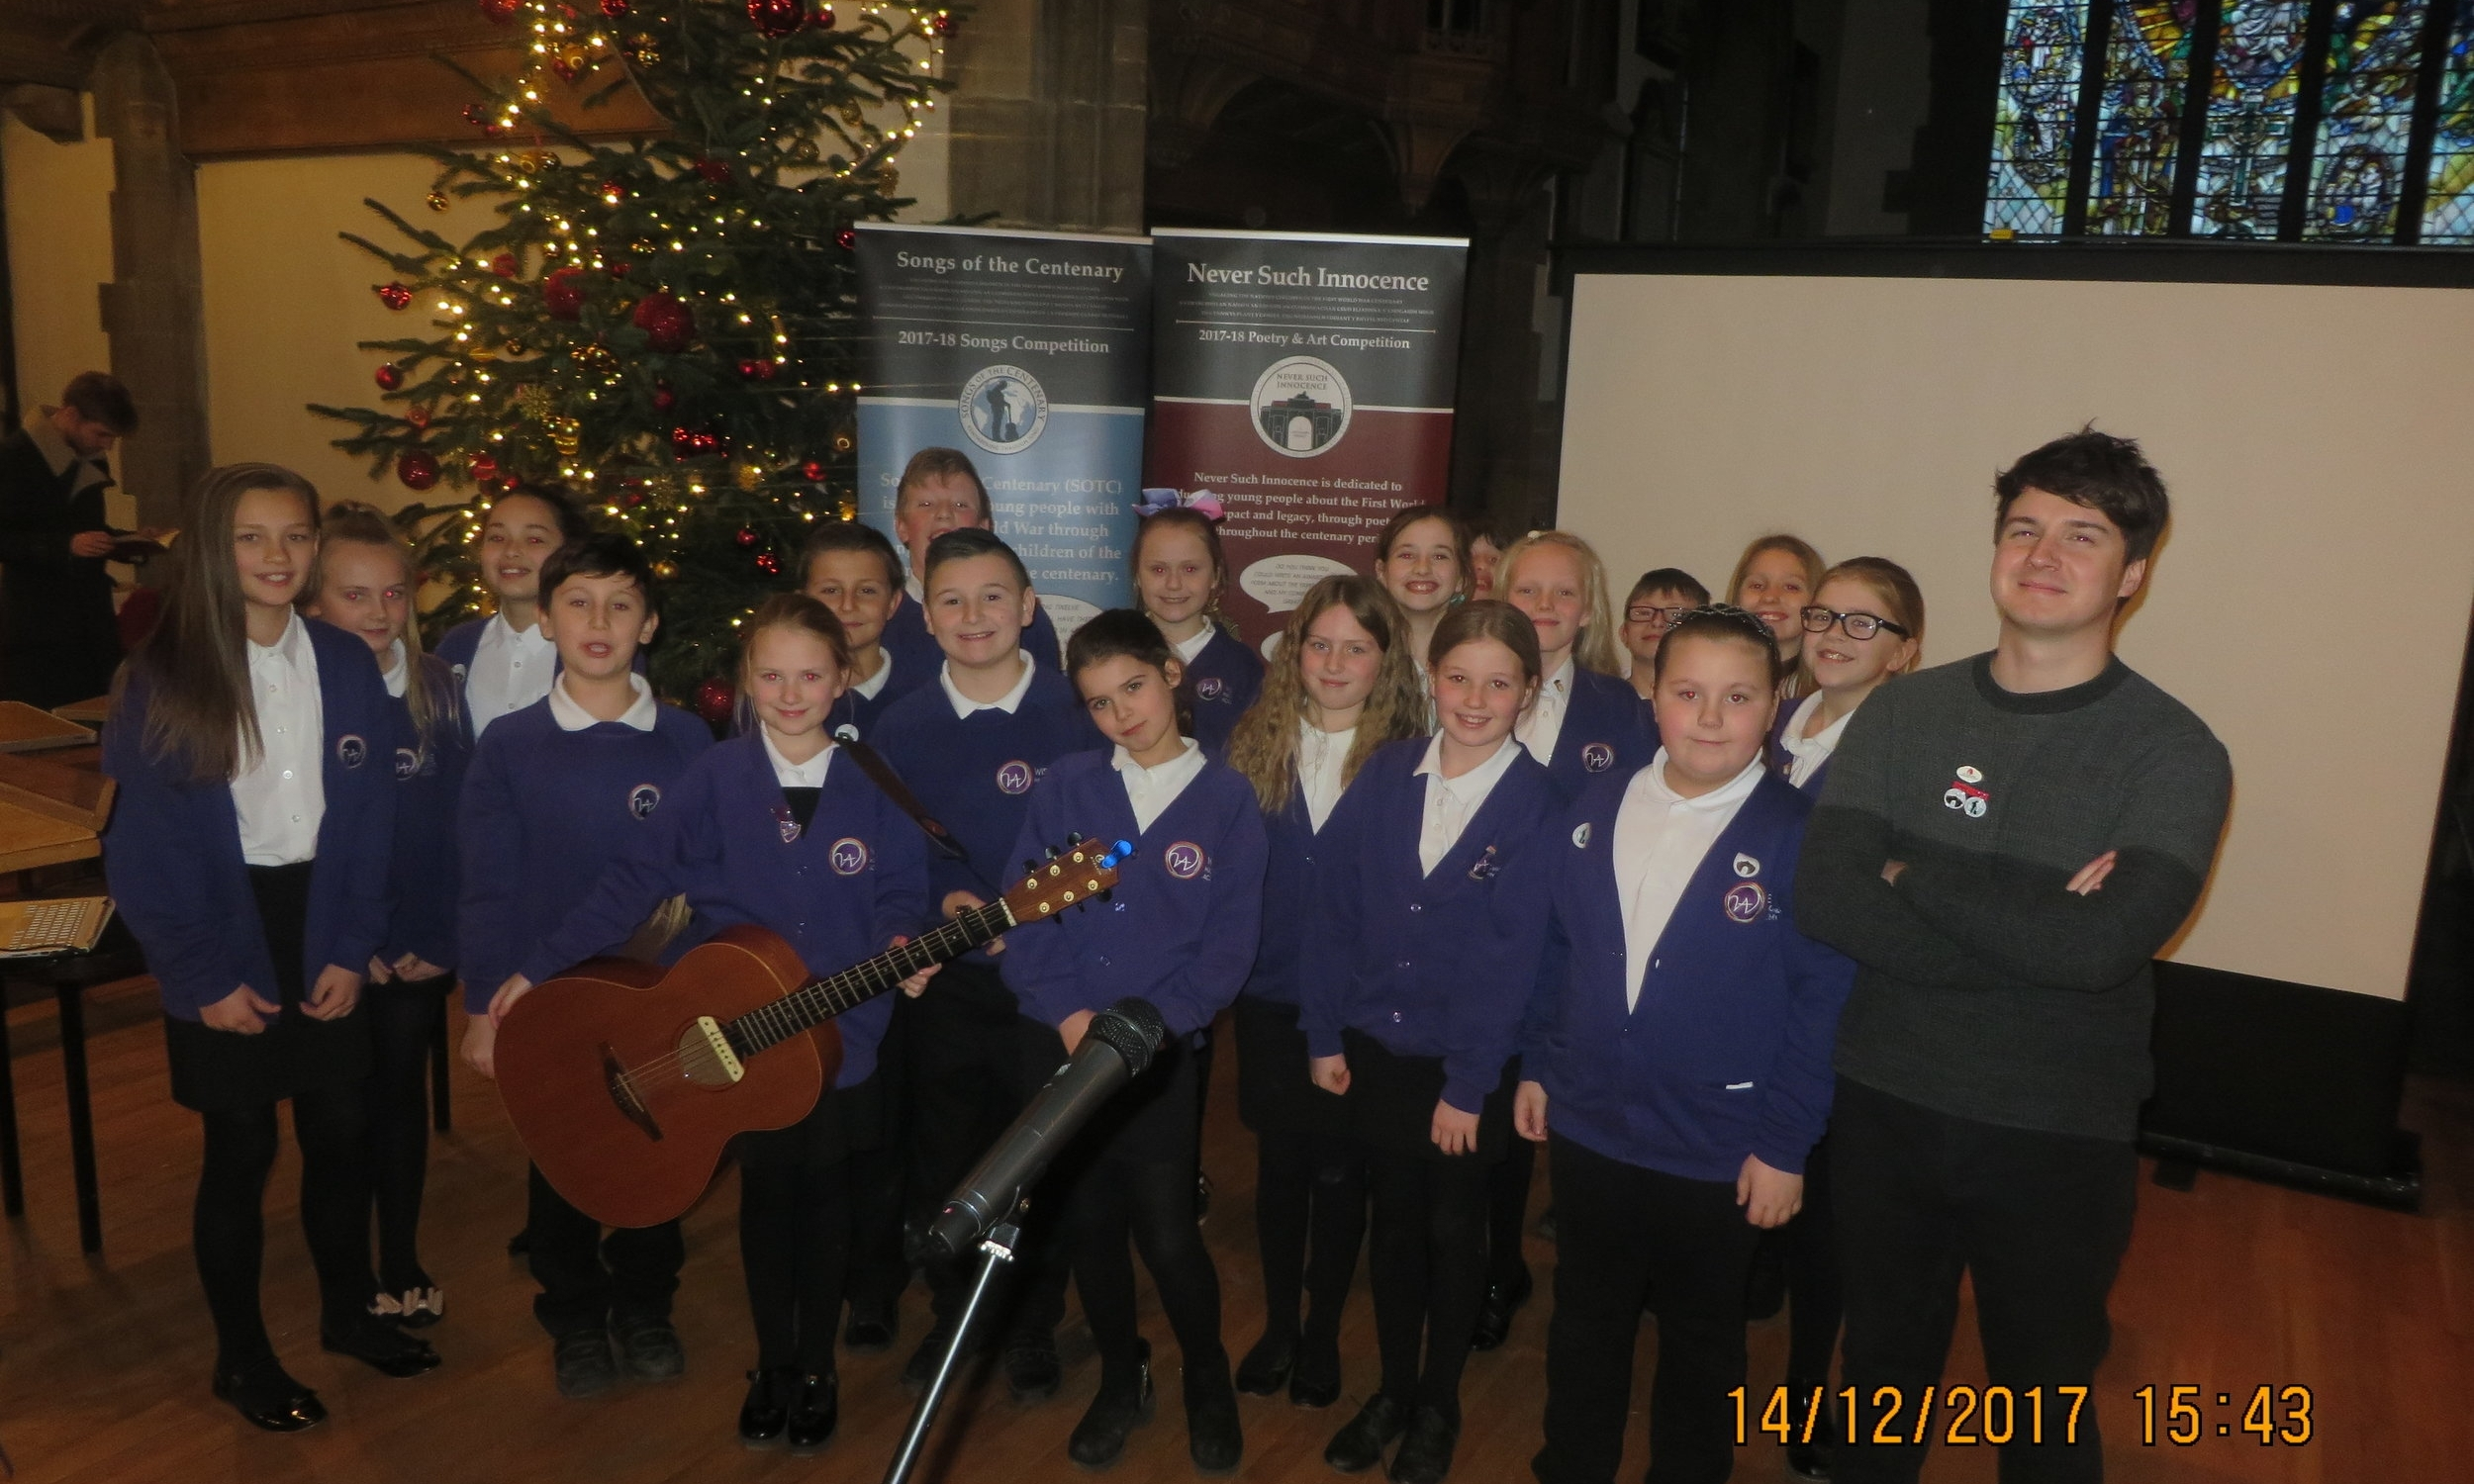 The group performed their song at Sunderland Minster for other schools and the great and good of the community!